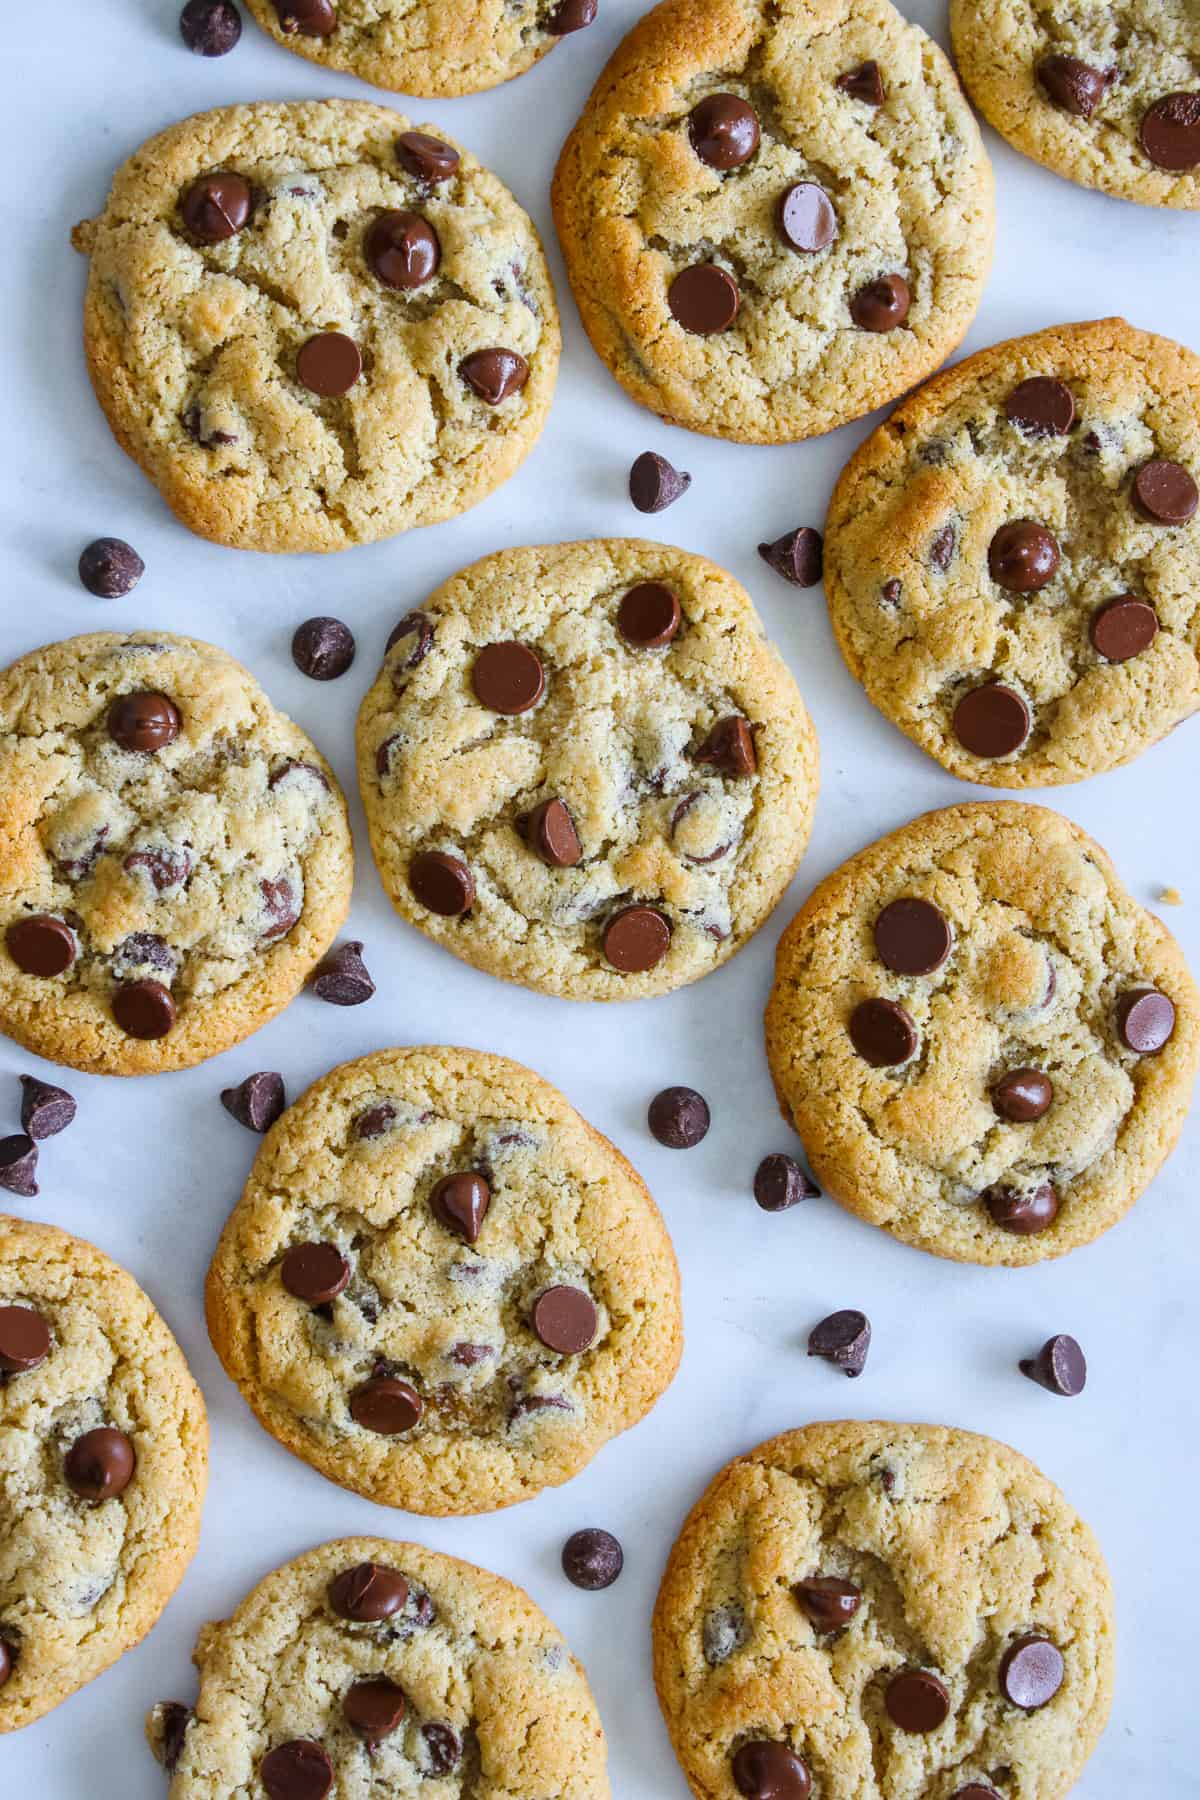 Overhead view of Almond Flour Chocolate Chip Cookies with a scattering of chocolate chips nearby.